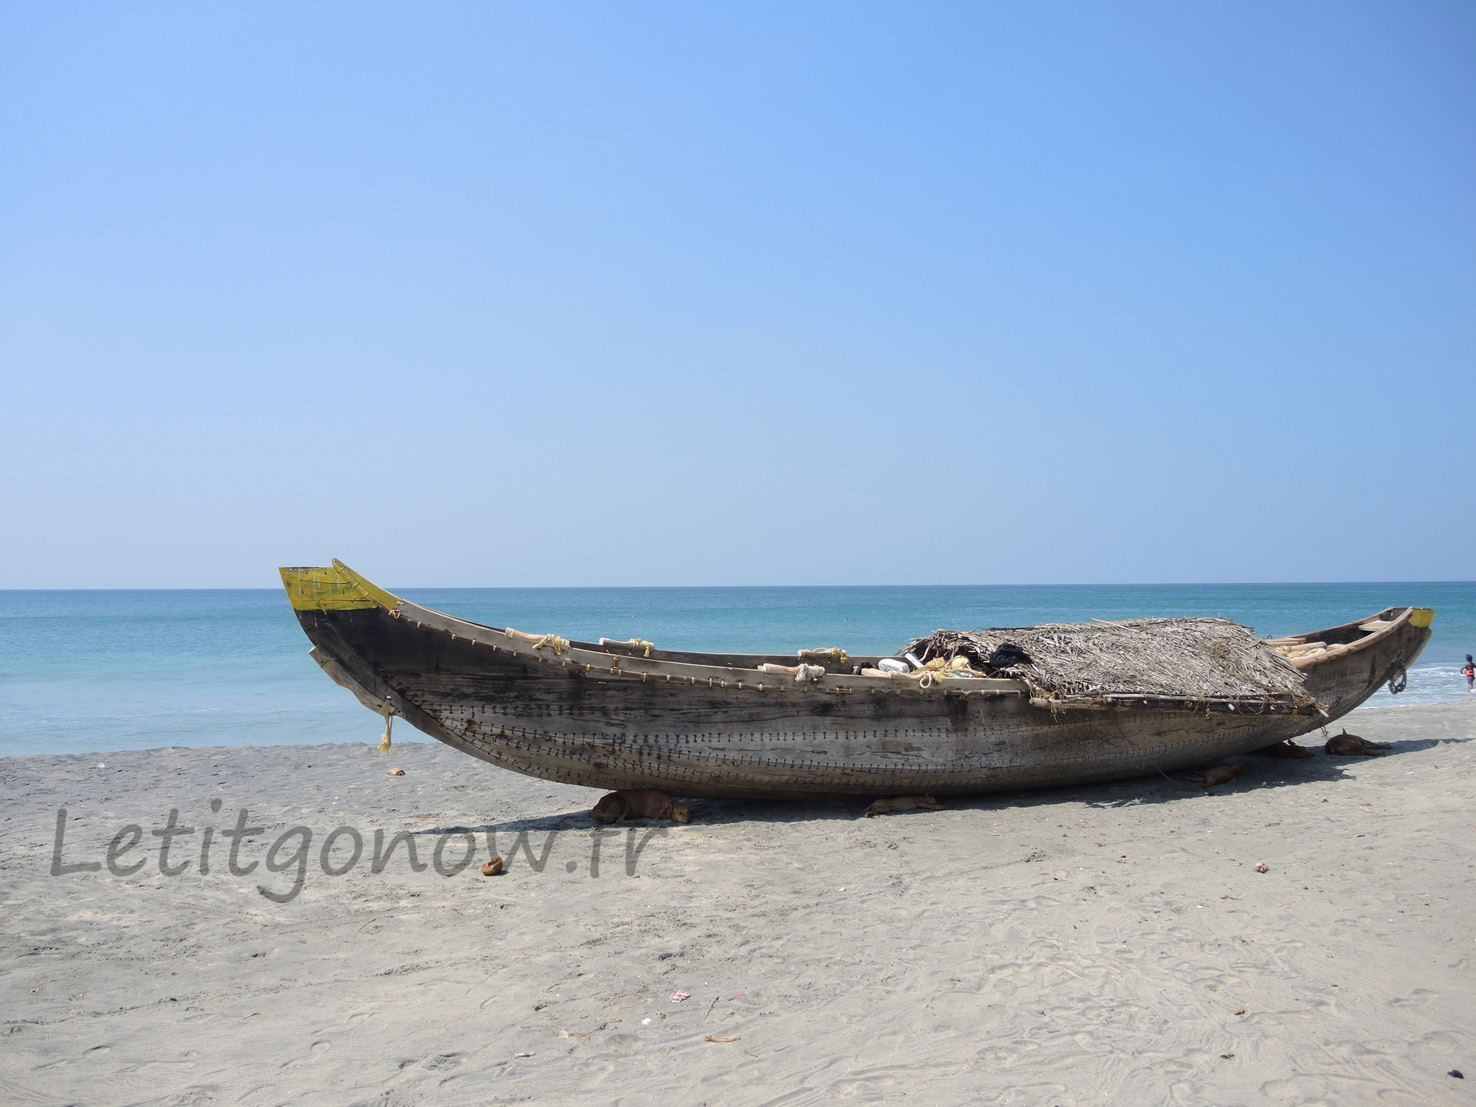 Fishermen boat on the beach, Kerala, India